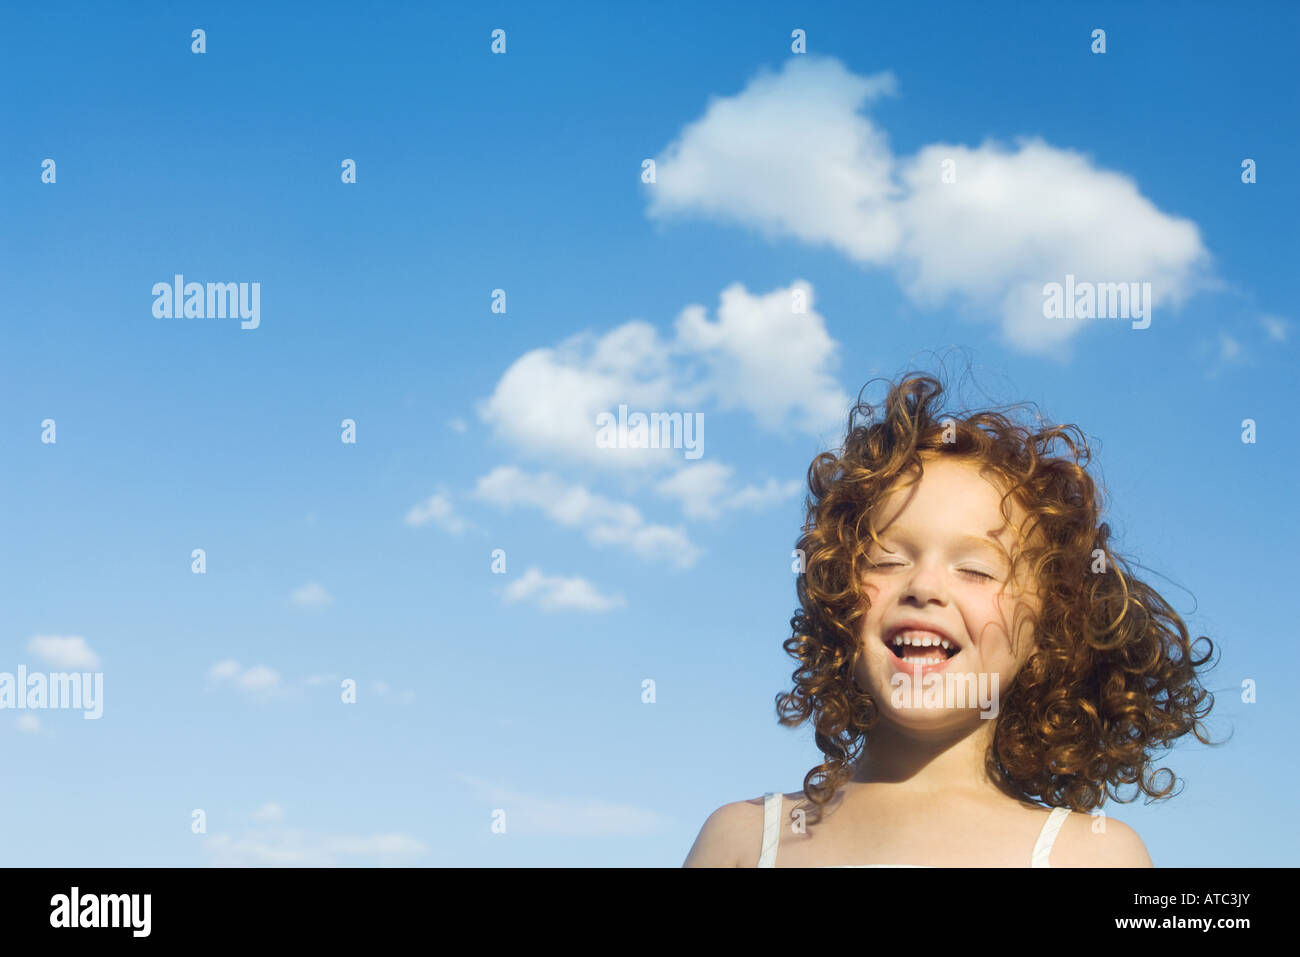 Little outdoors with tousled hair, eyes closed, smiling - Stock Image